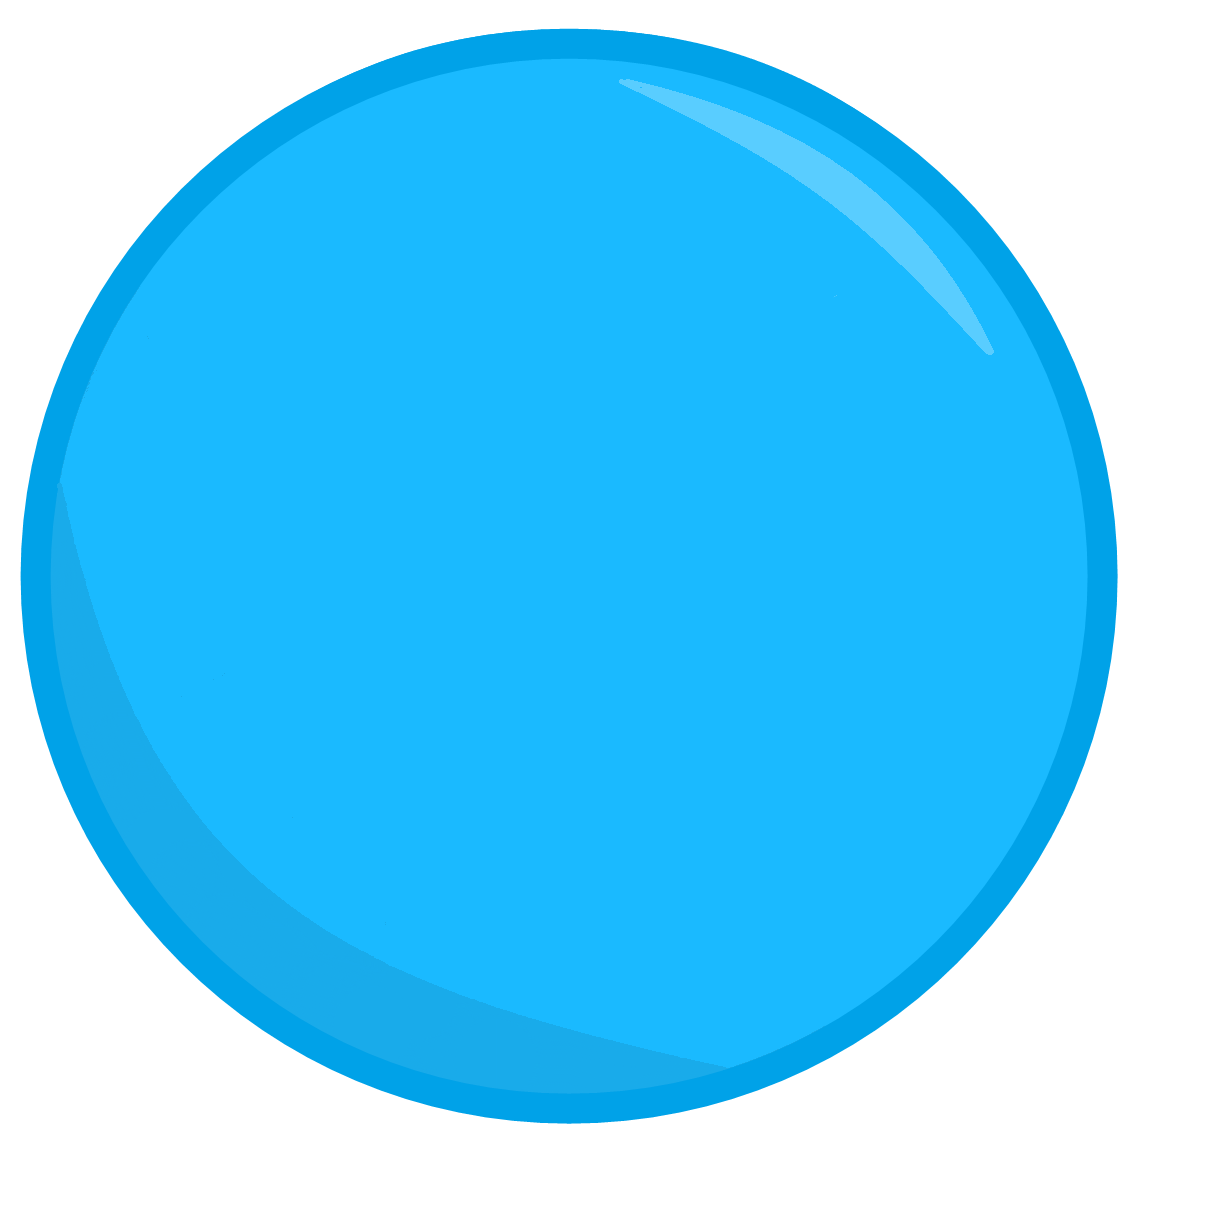 Image redone body png. Ball clipart bouncy ball